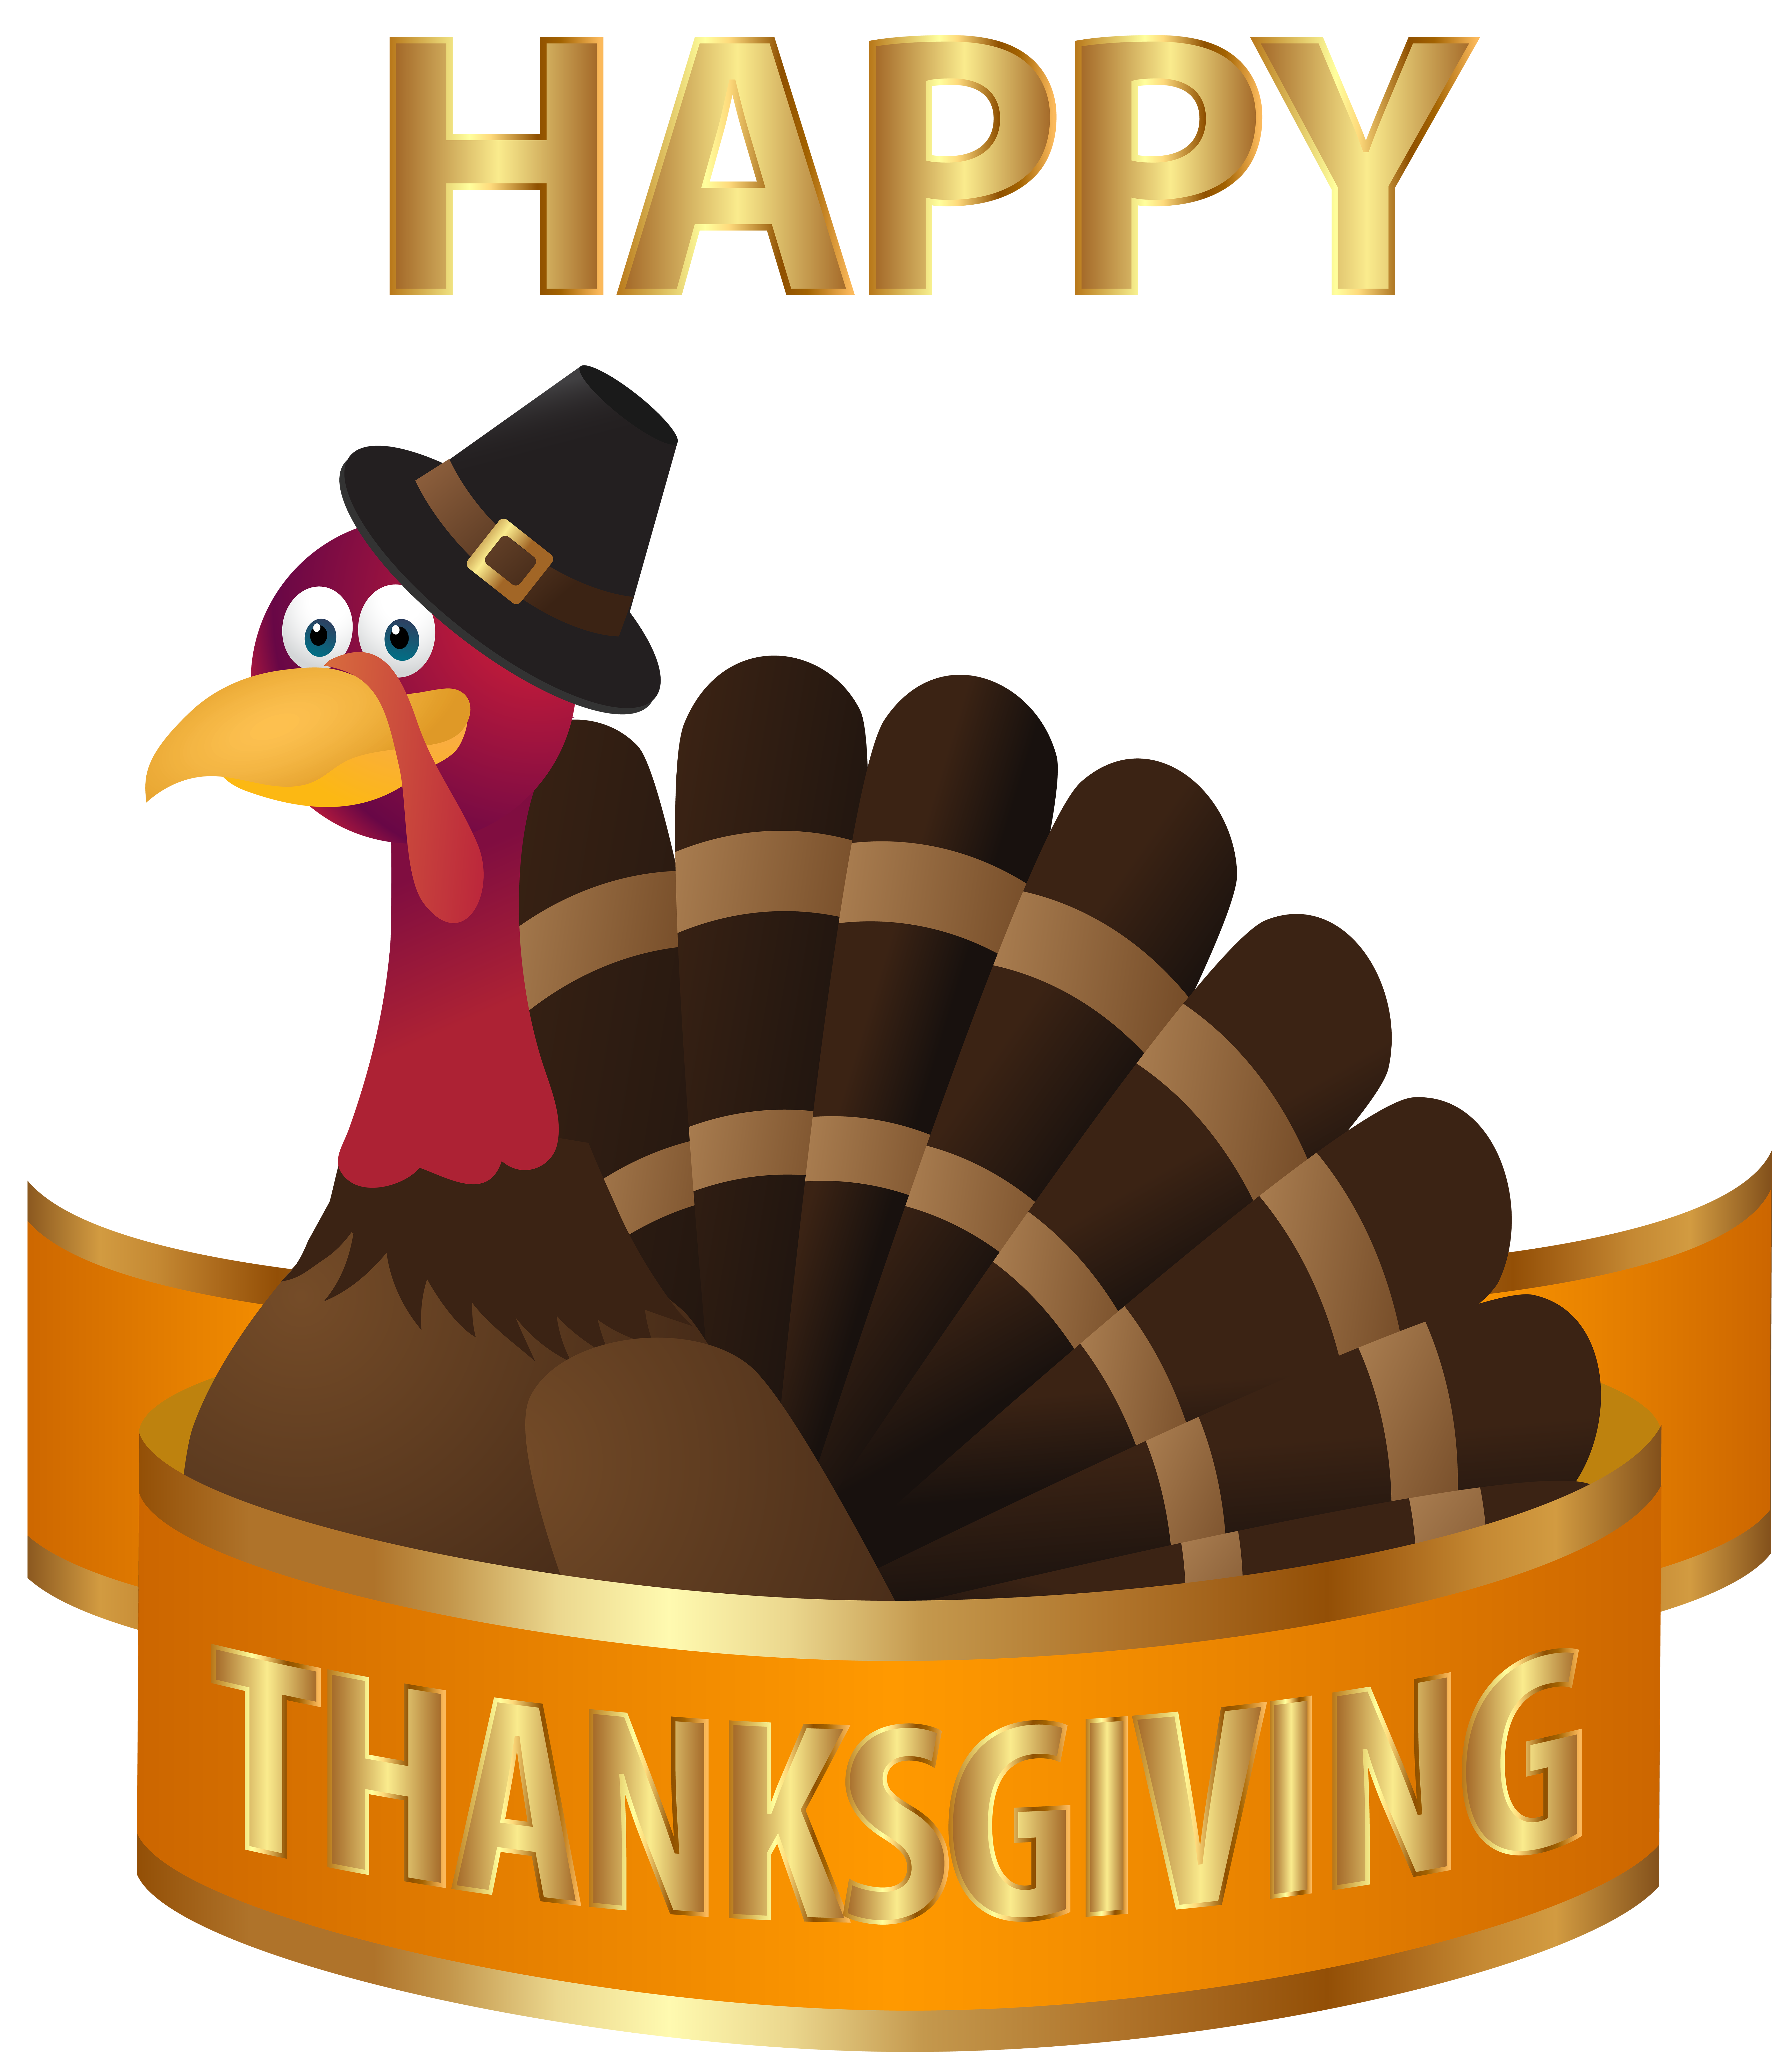 Beach happy thanksgiving clipart clip art library Happy Thanksgiving Turkey Transparent PNG Image | Gallery ... clip art library